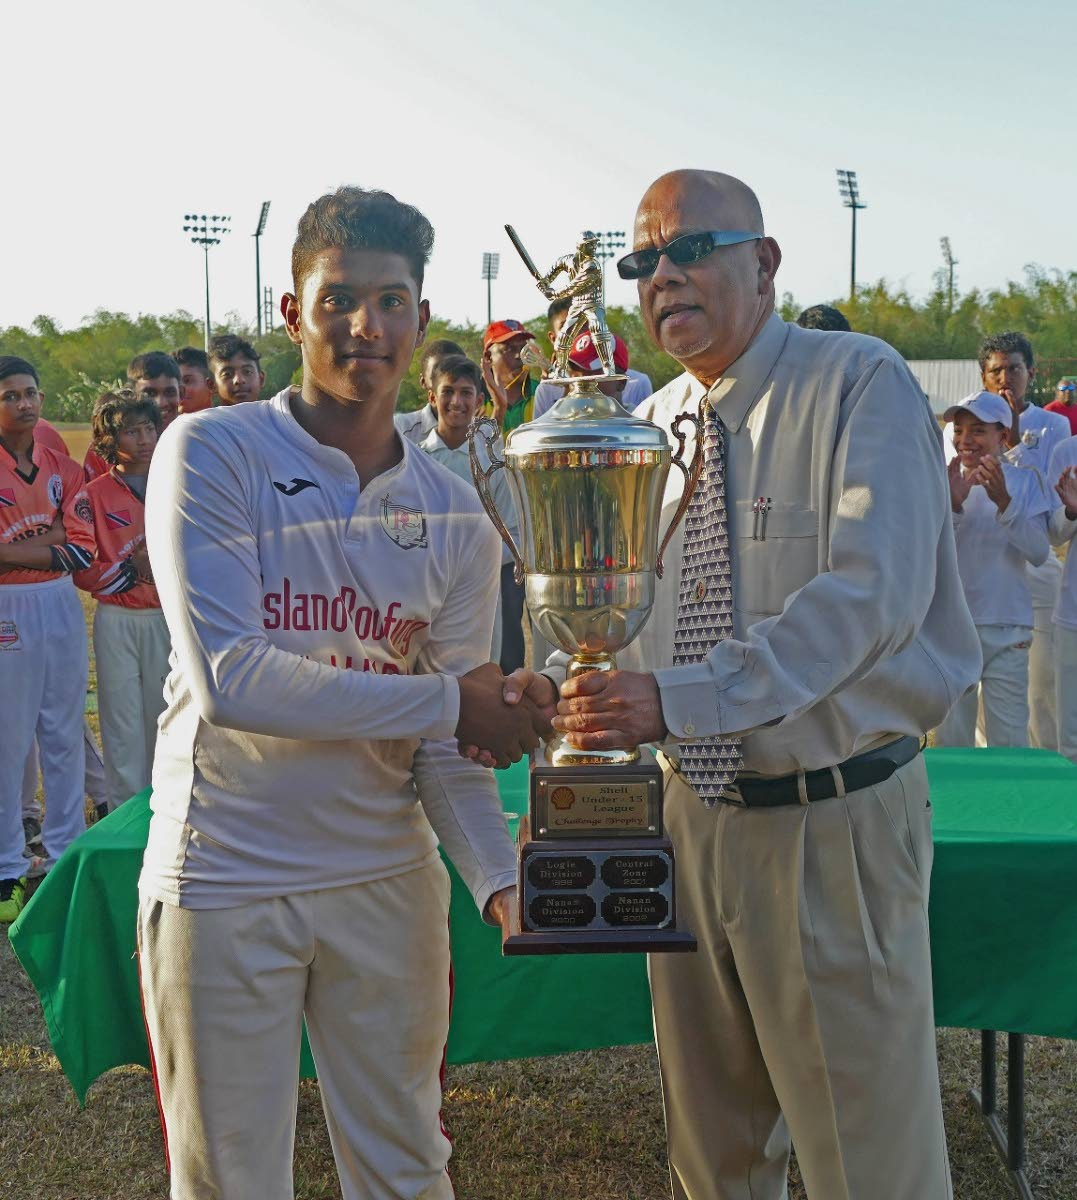 TT Under-15 player Justin Jagessar, left, collects a trophy from TT Cricket Board president Azim Bassarath, after leading the Central Zone to the U-15 Inter Zone title earlier this year. Jagessar scored 73 yesterday against Guyana in the Regional U-15 tournament. PHOTO COURTESY TTCB